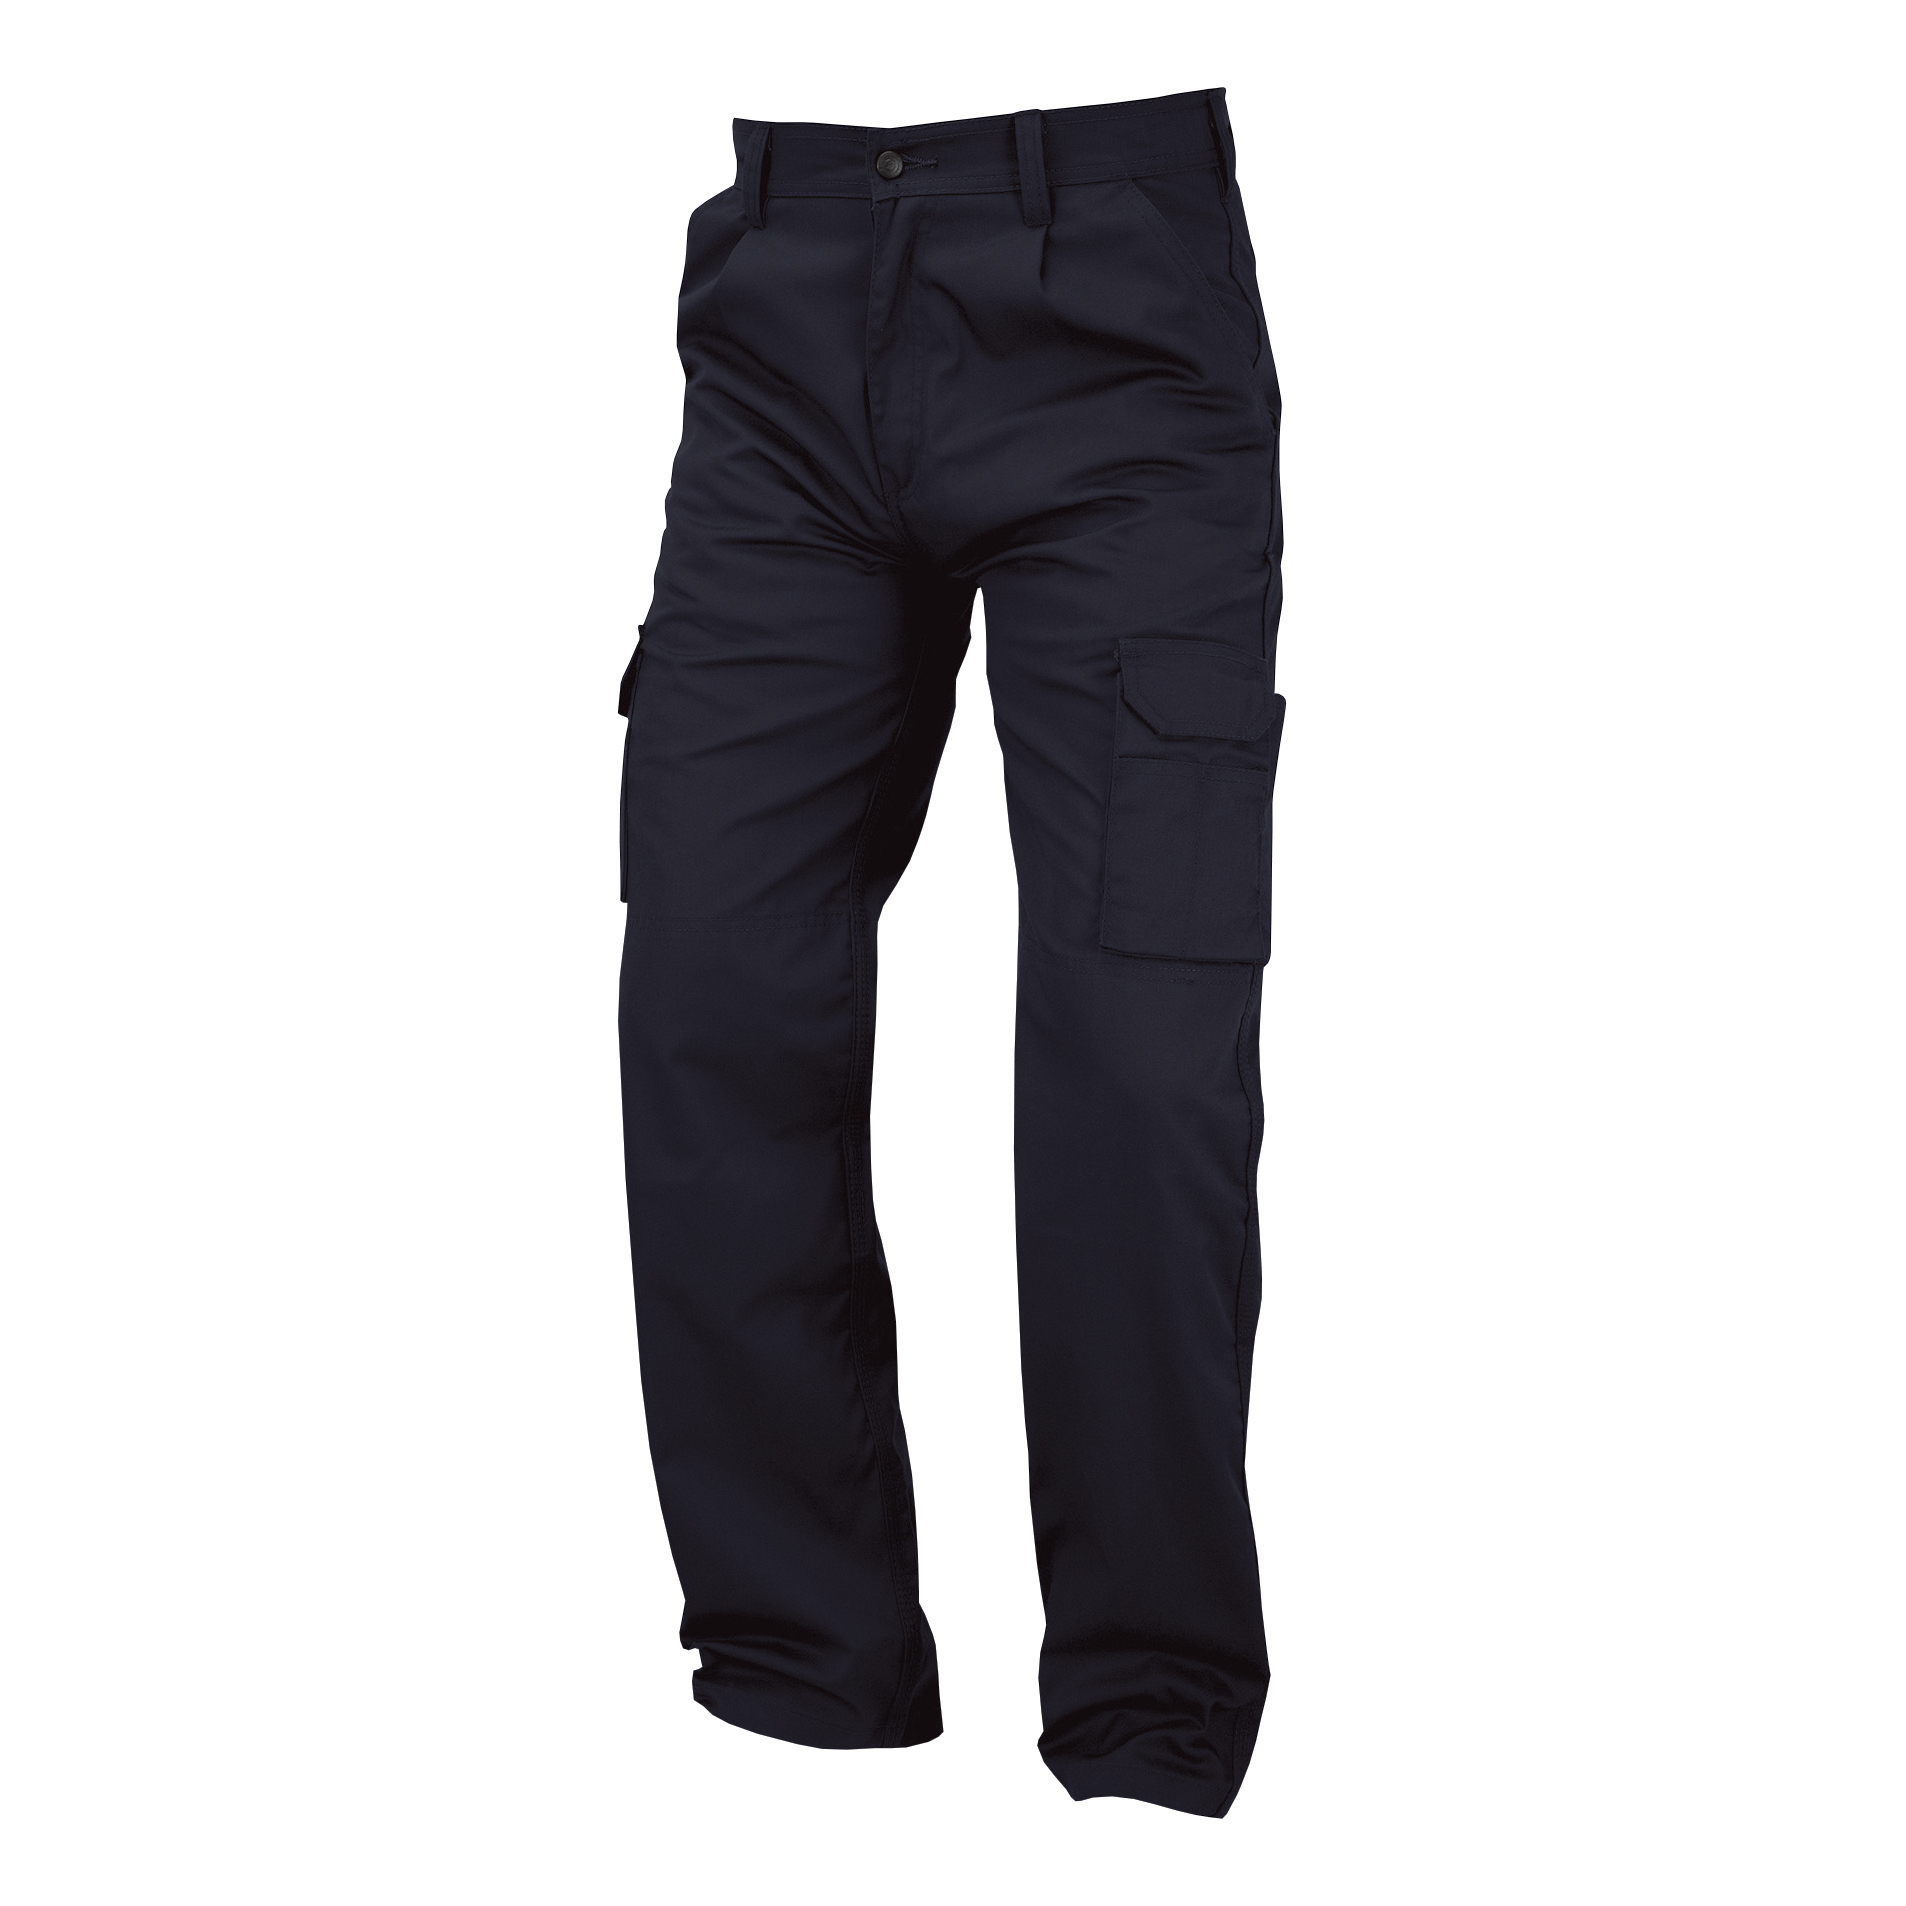 Combat Trousers Polycotton Multifunctional 28in Long Navy Blue Ref PCTHWN28T *Approx 3 Day Leadtime*